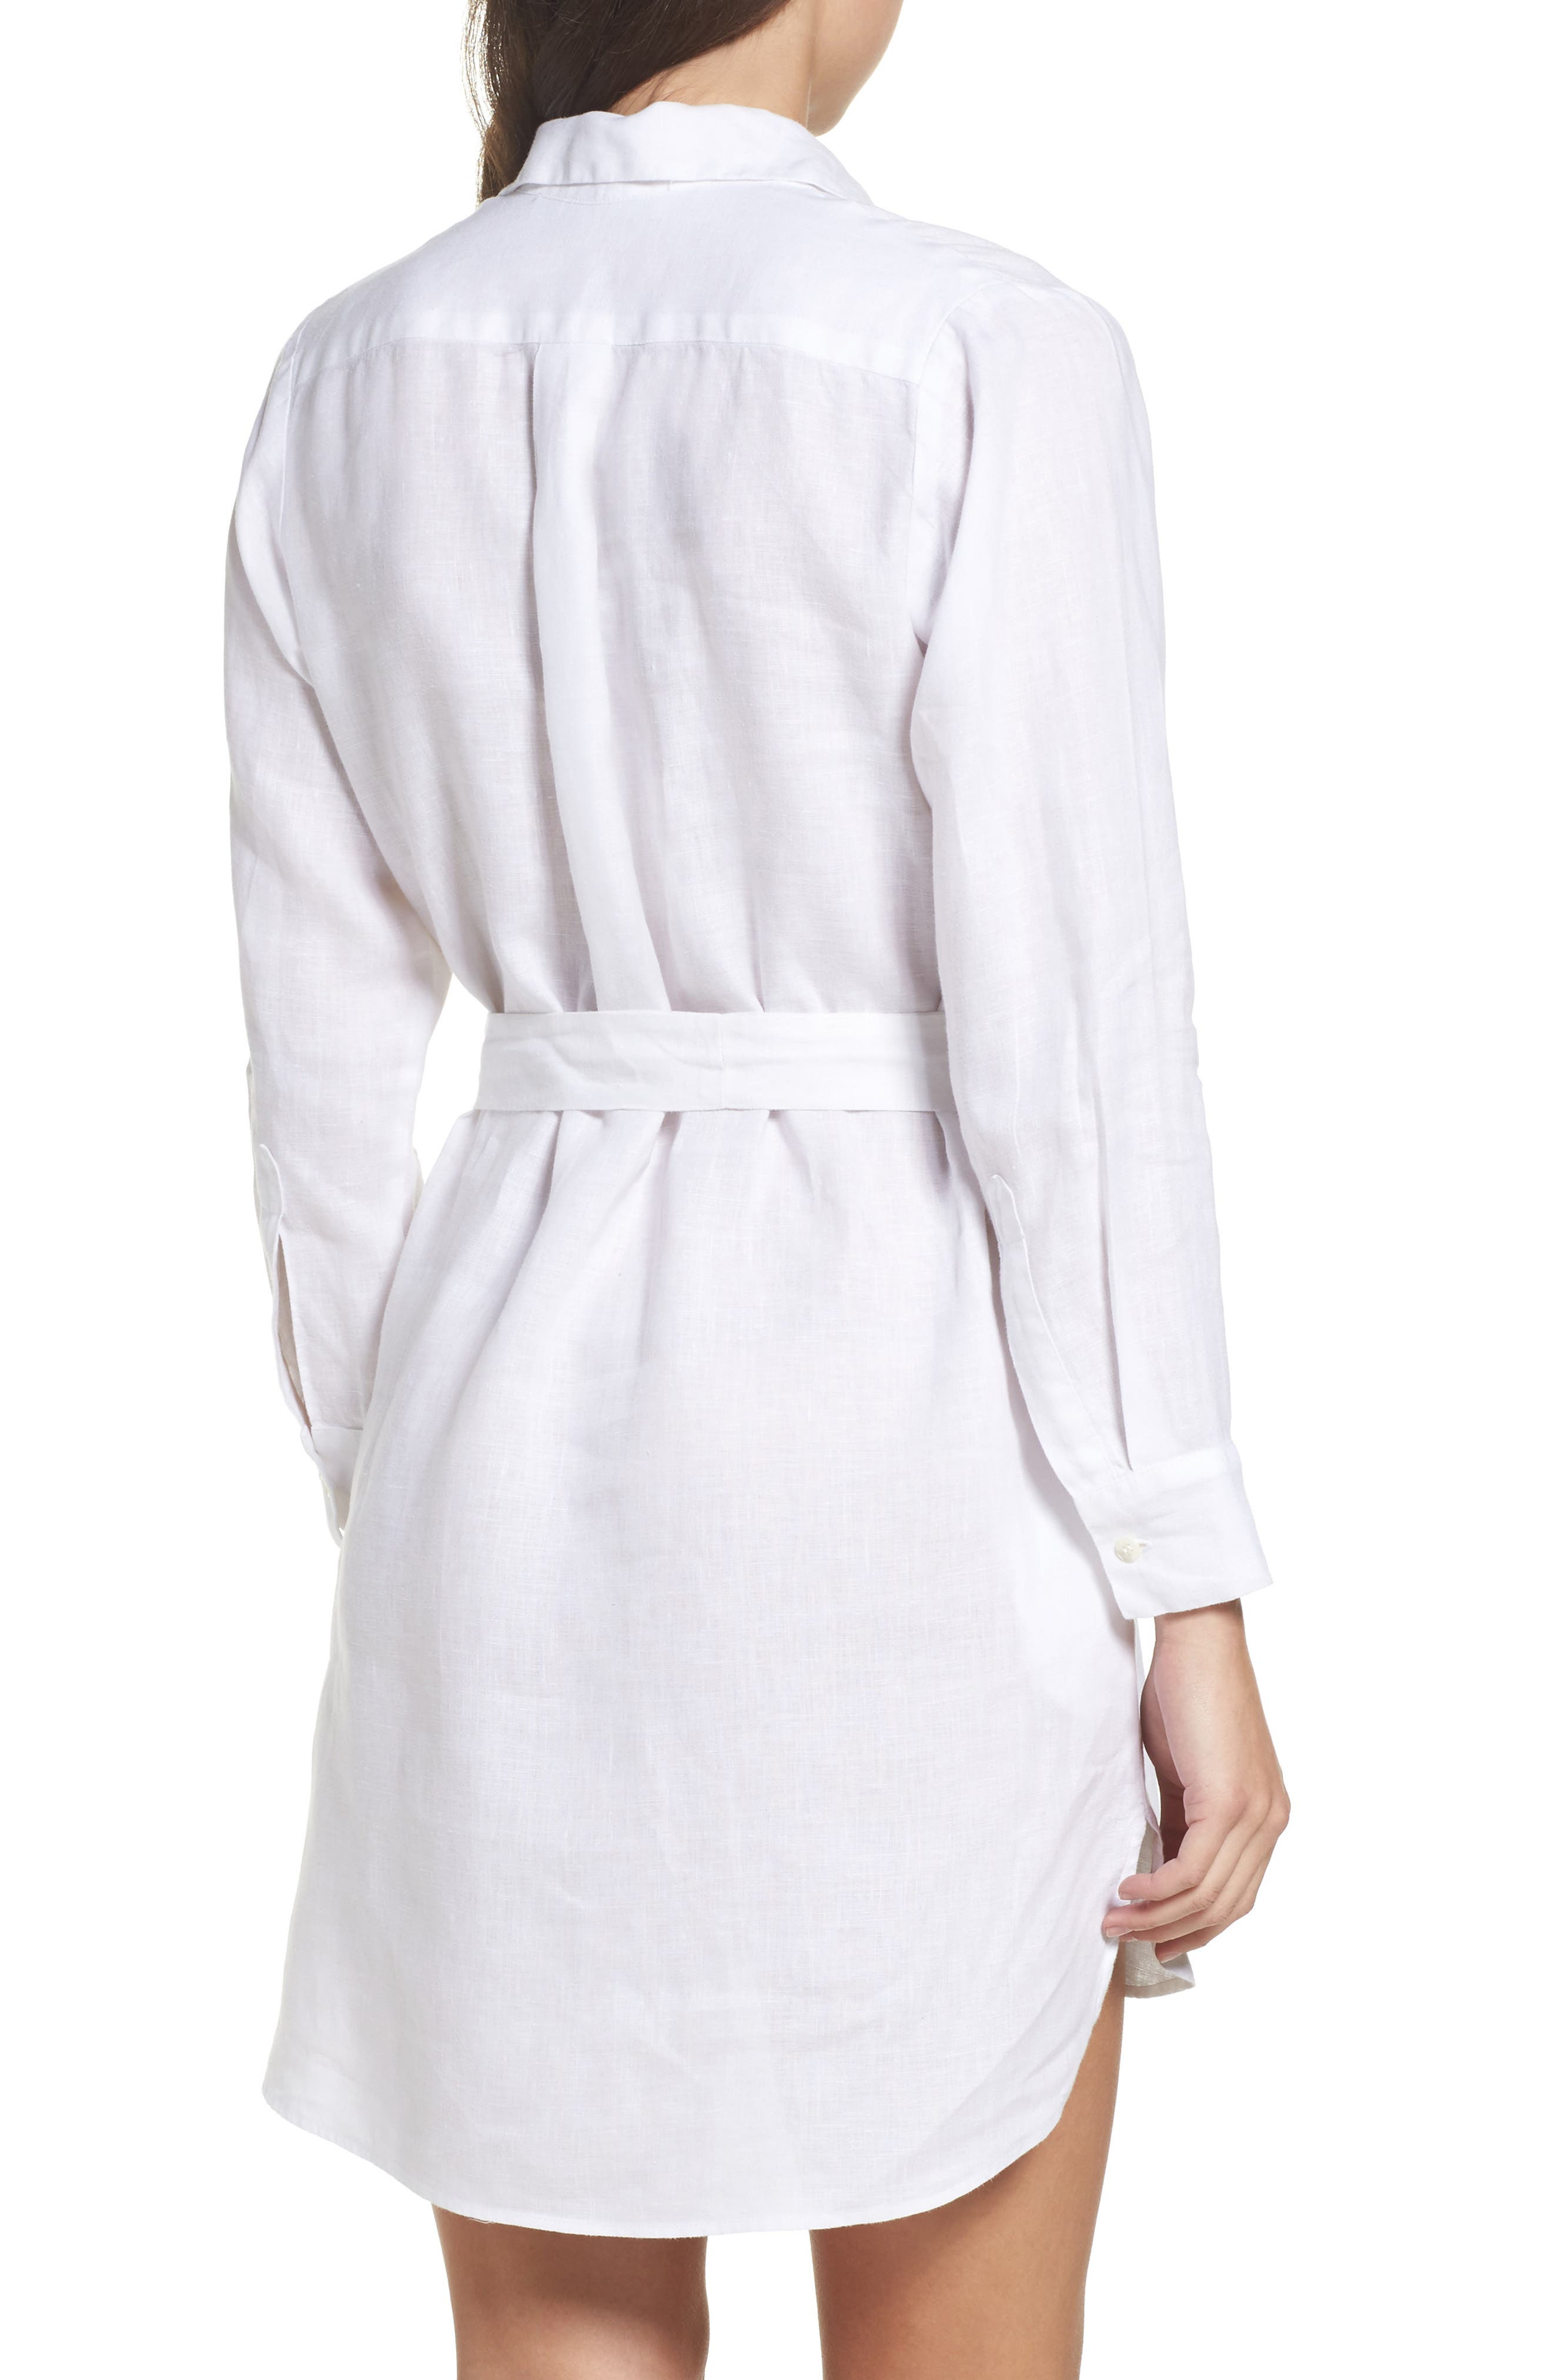 Linen Shirtdress,                             Alternate thumbnail 2, color,                             White